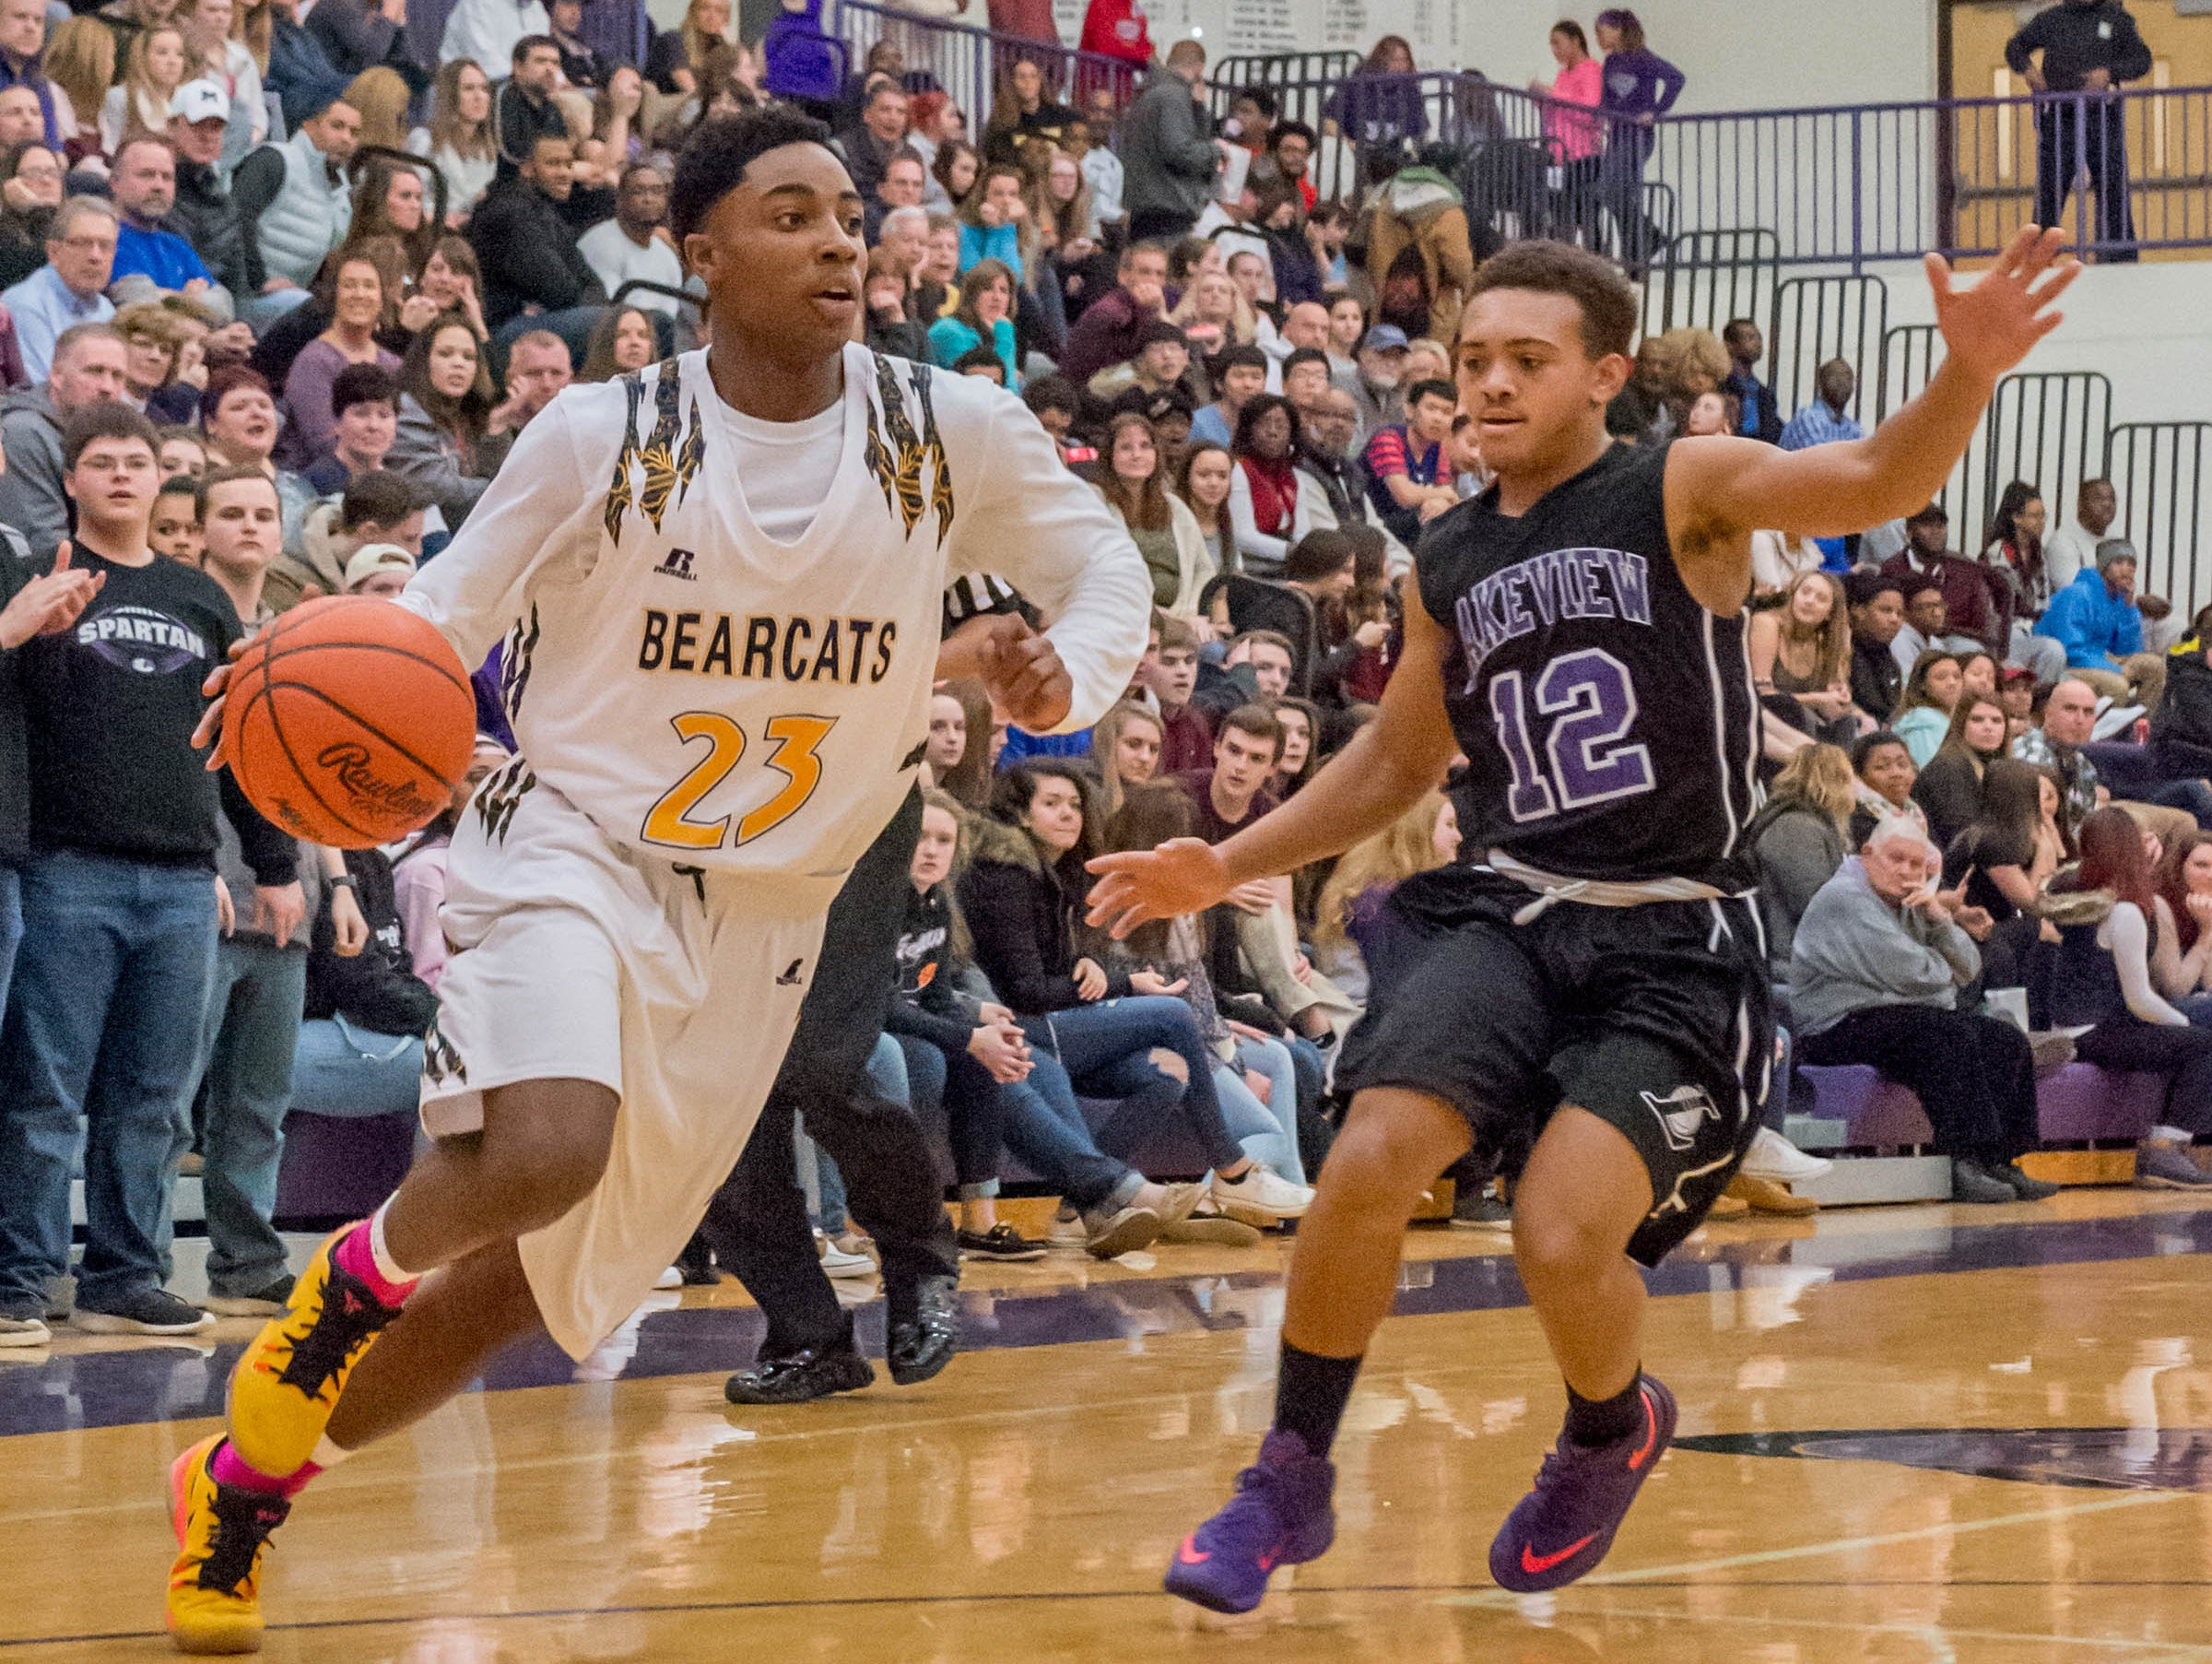 Battle Creek Central's Dontell Hardy (23) drives to the basket past Lakeview's CJ Foster (12) during Friday evening's game.